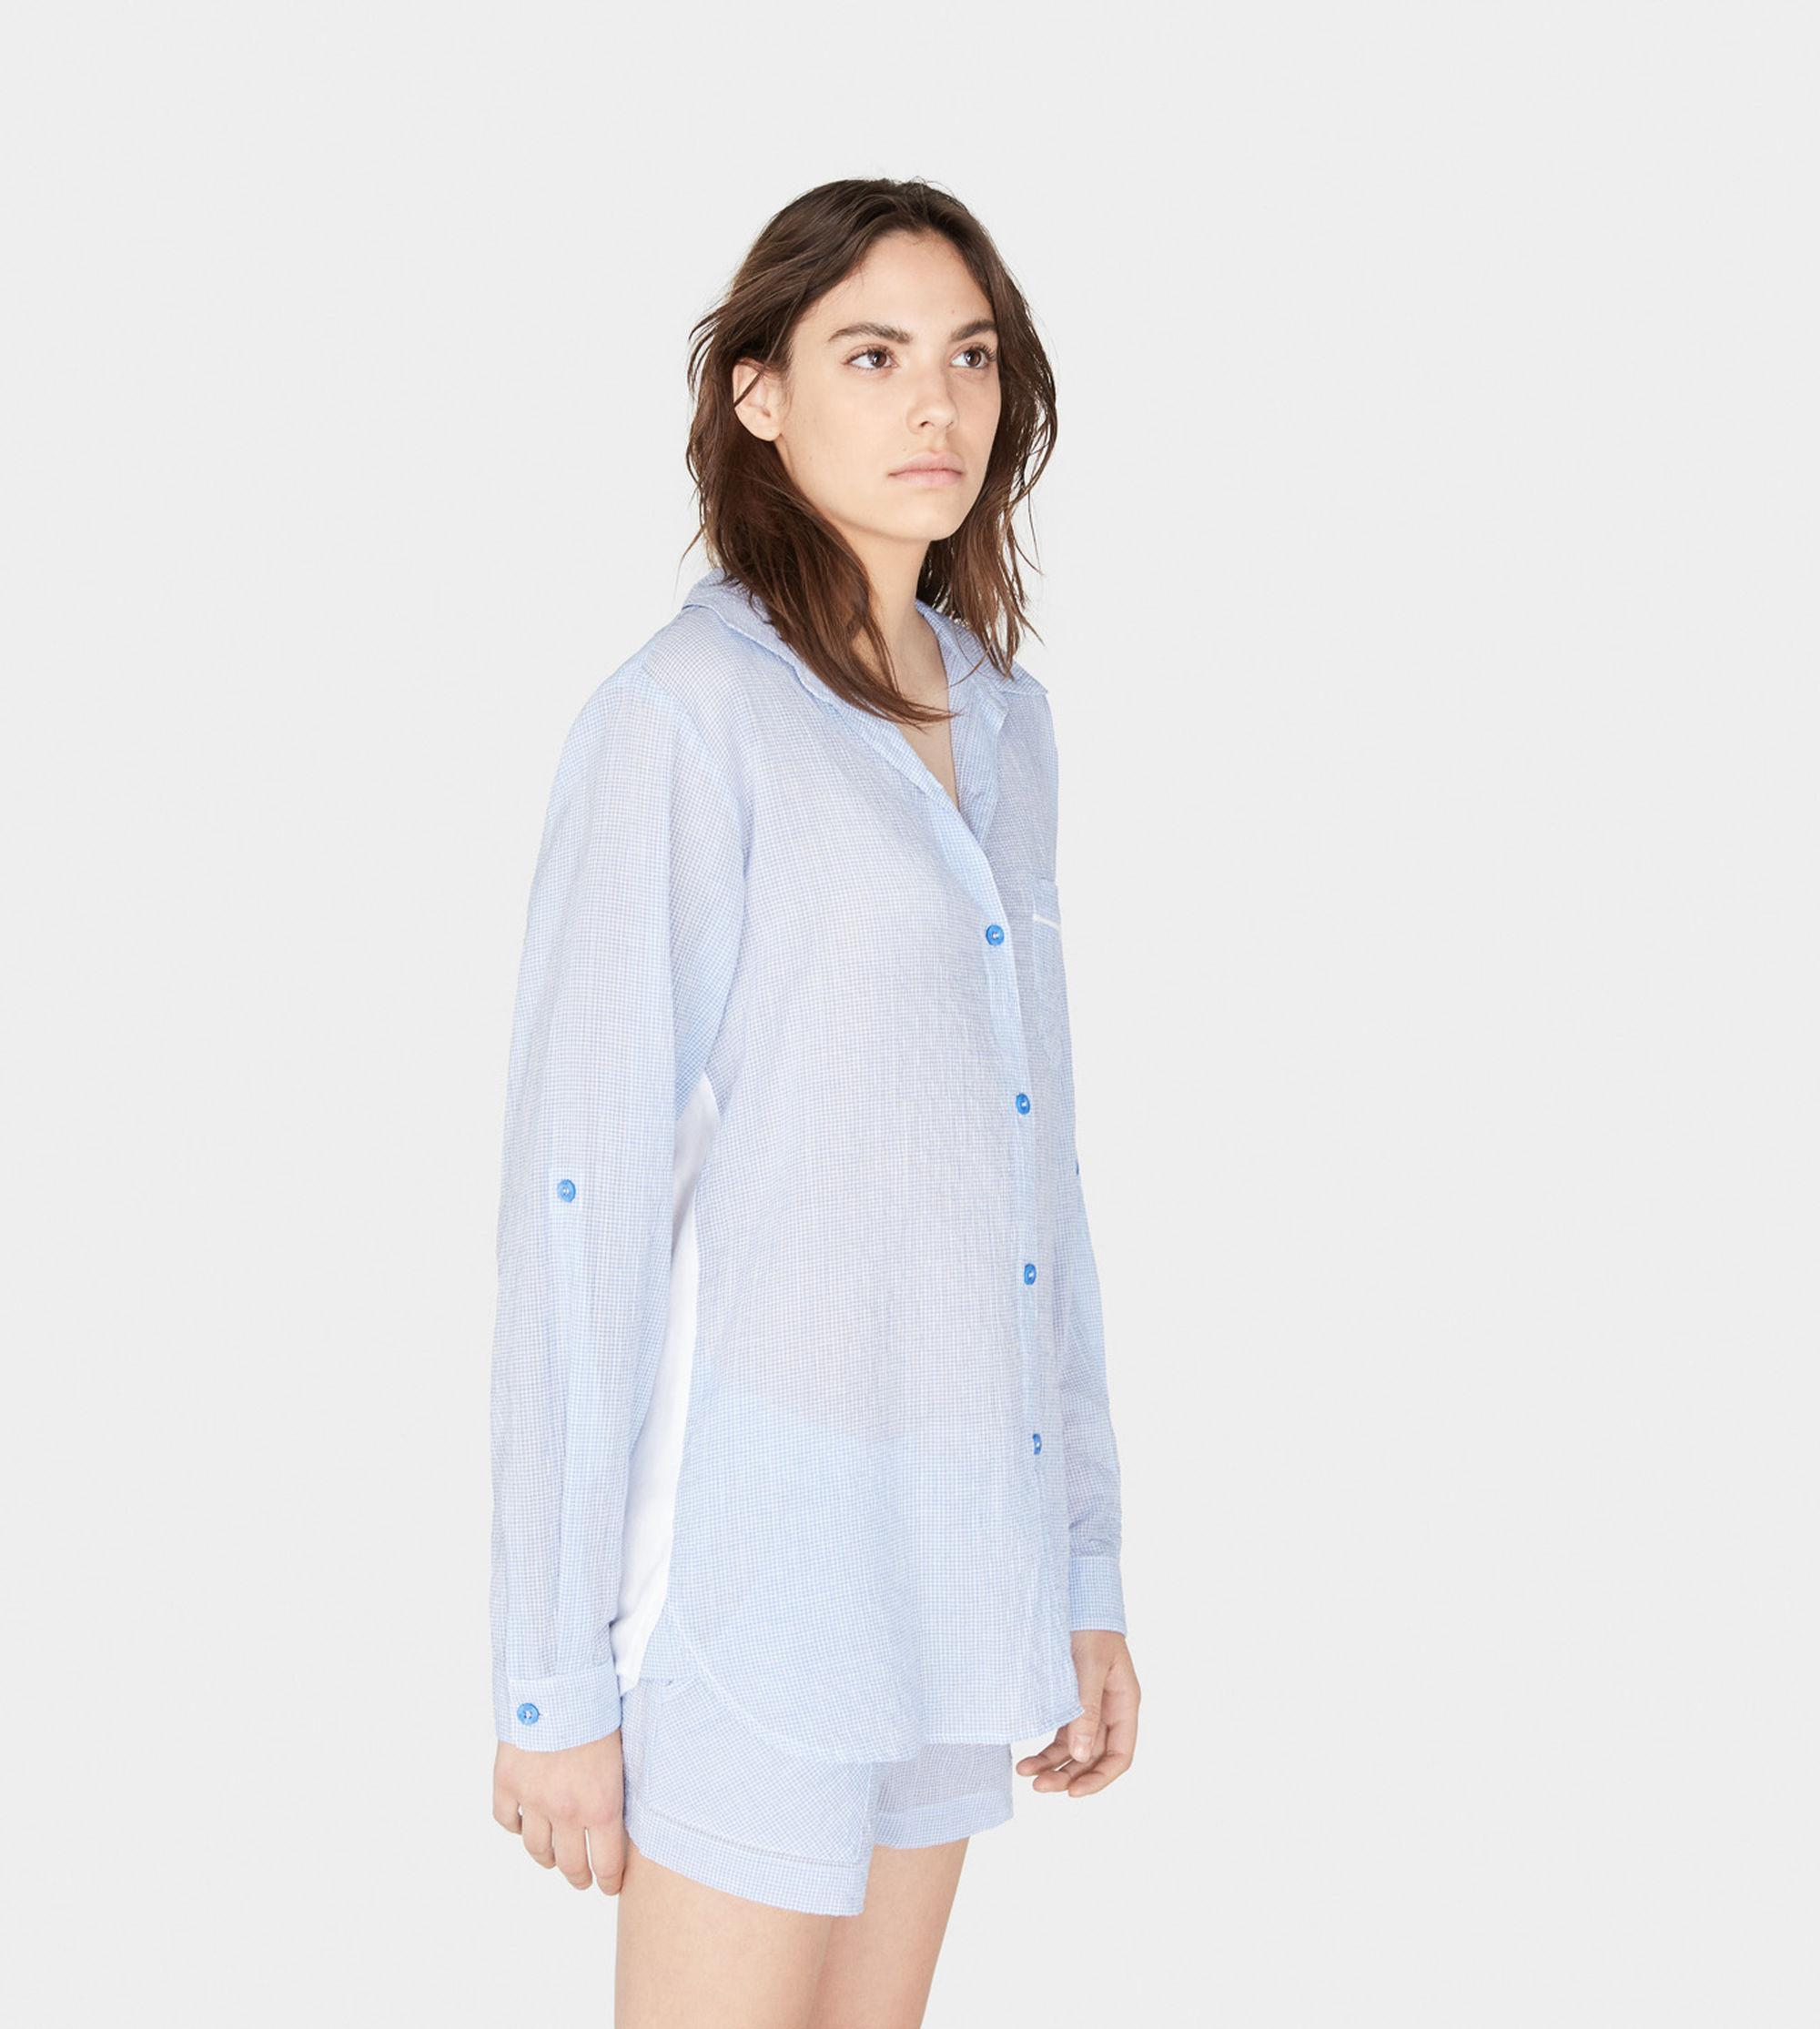 f84d3ba0f1d UGG Maisie Gingham Pj Top in Blue - Lyst